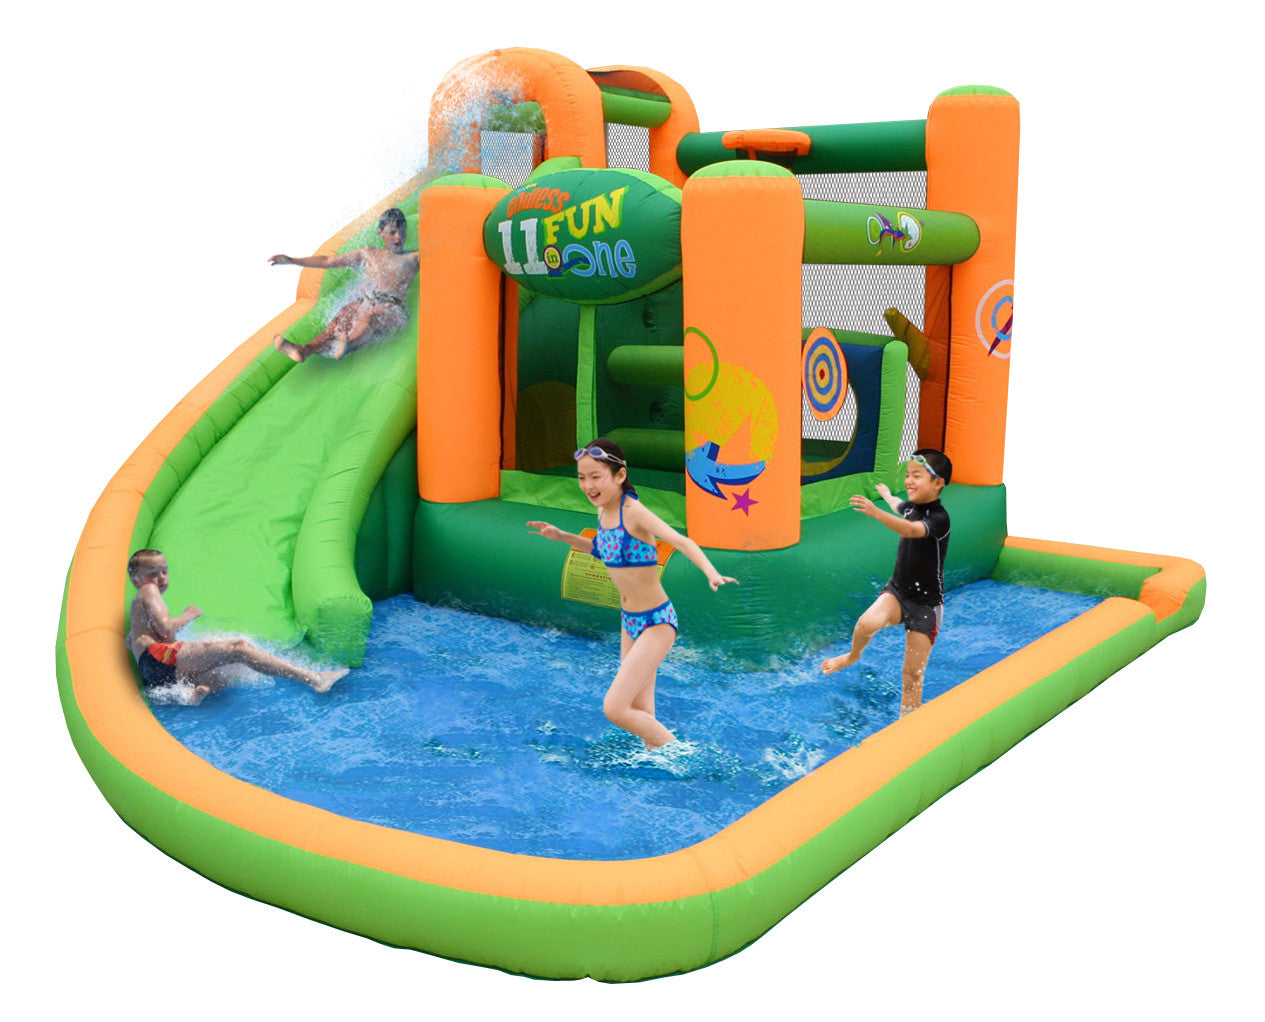 KidWise Endless Fun 11 in 1 Inflatable Bounce House and Water Slide (KWWS-9306)